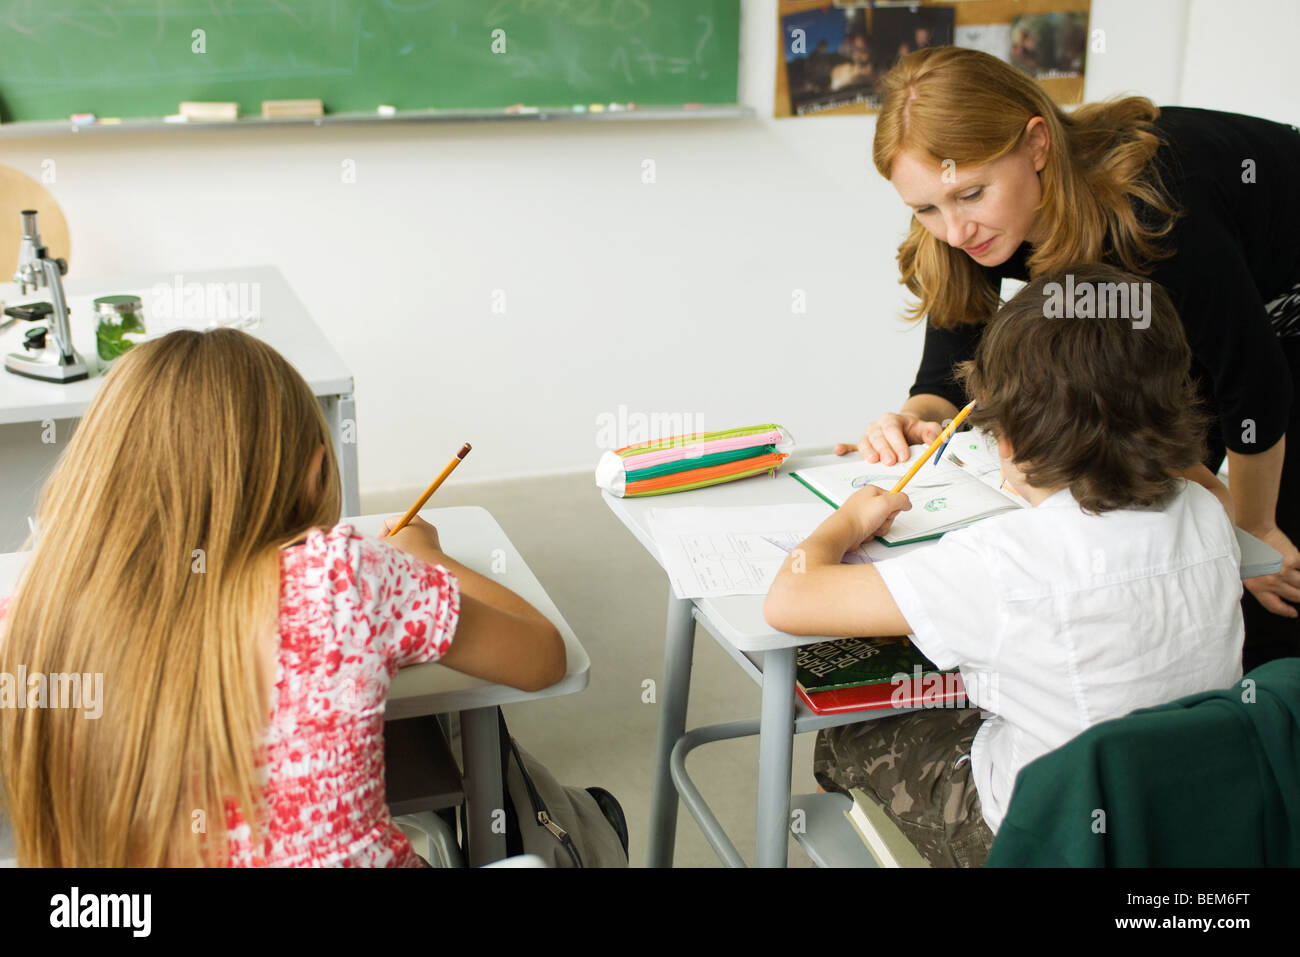 Elementary teacher leaning over student's desk, helping him with assignment - Stock Image